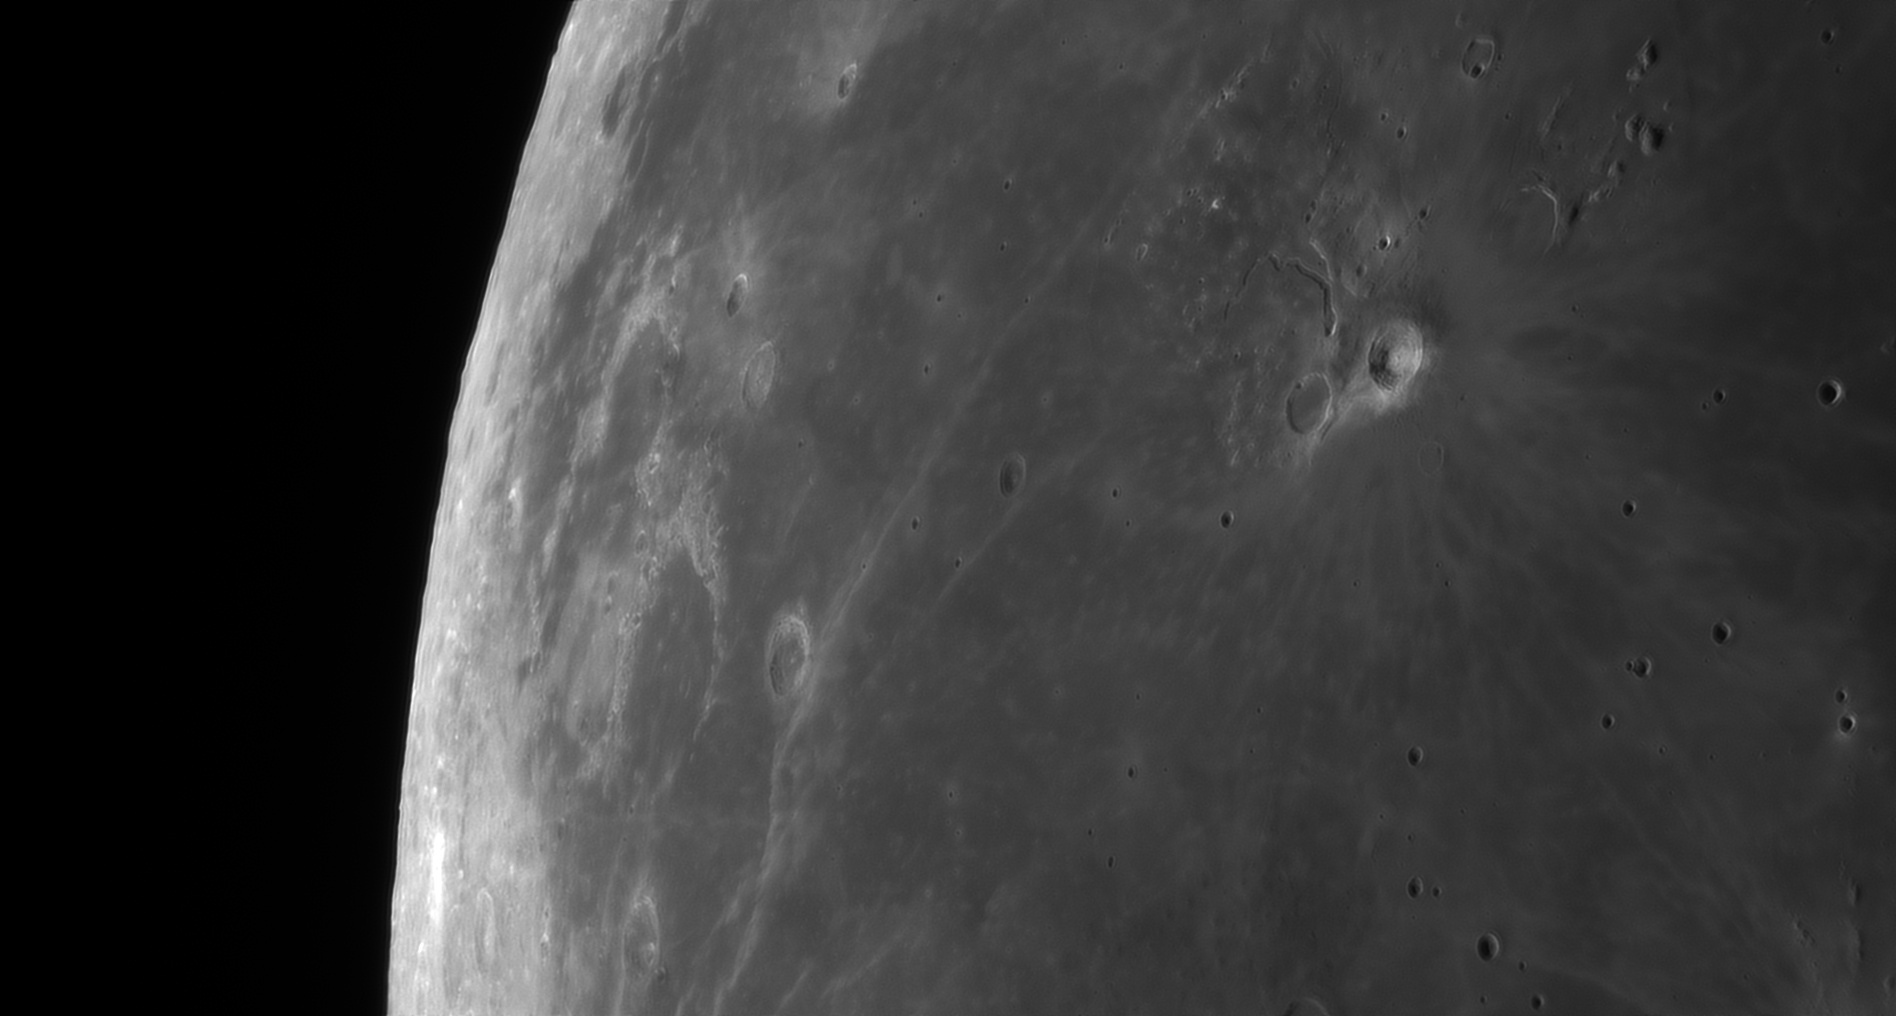 5d97a7910b1ed_Moon_060307_230919_ZWOASI290MM_Rouge_23A_AS_P40_lapl4_ap359.jpg.16ffaed375baeaf1a7abad2dfb04043b.jpg